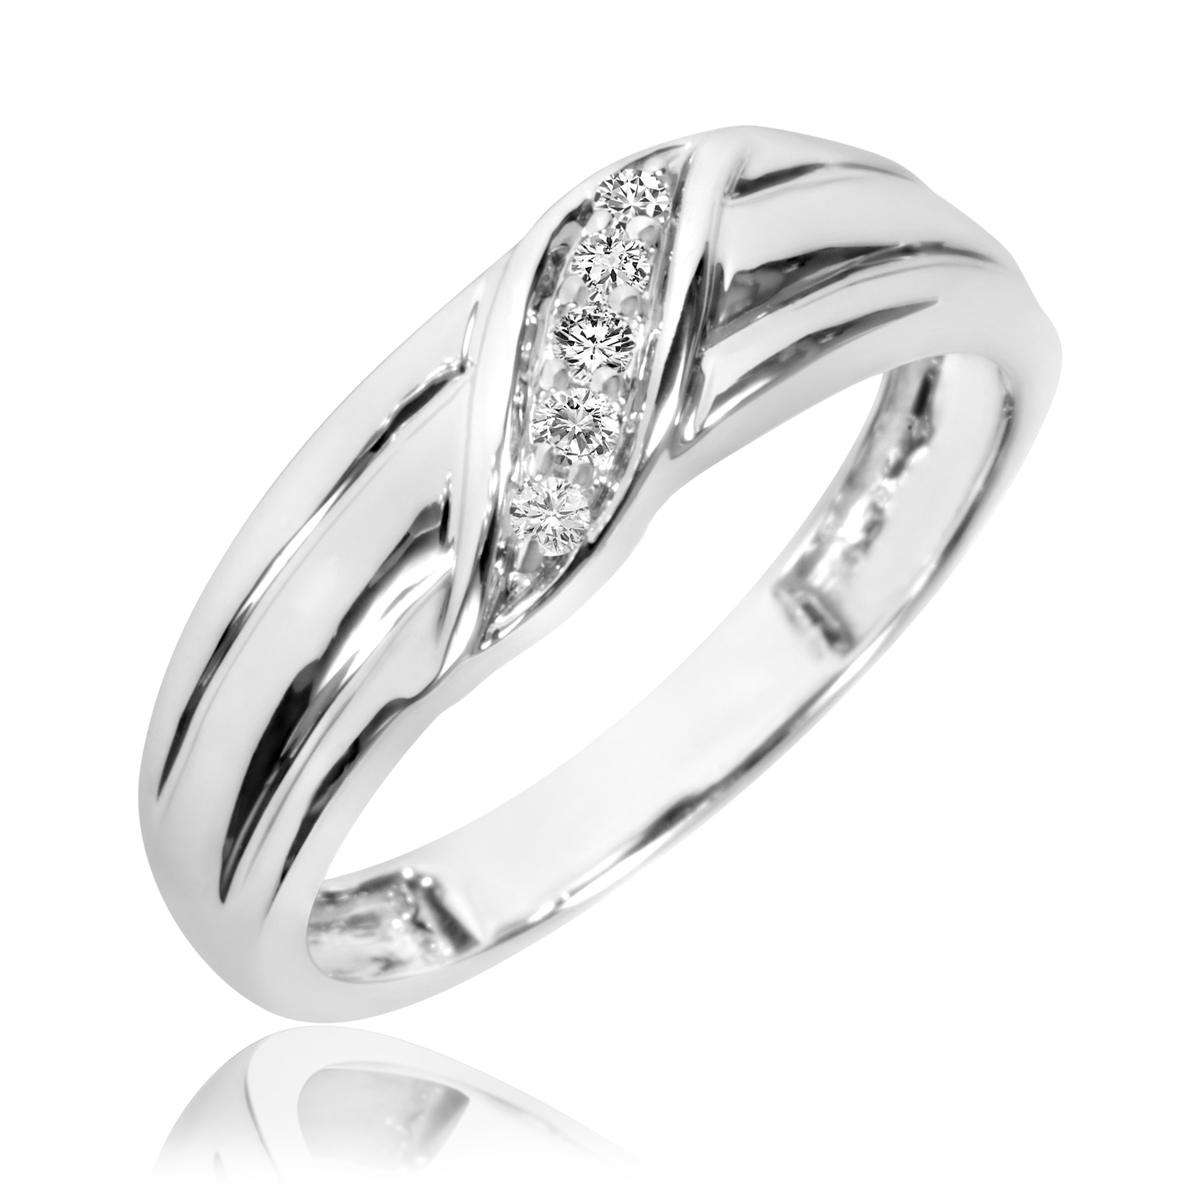 1 8 Carat TW Diamond Mens Wedding Band 14K White Gold